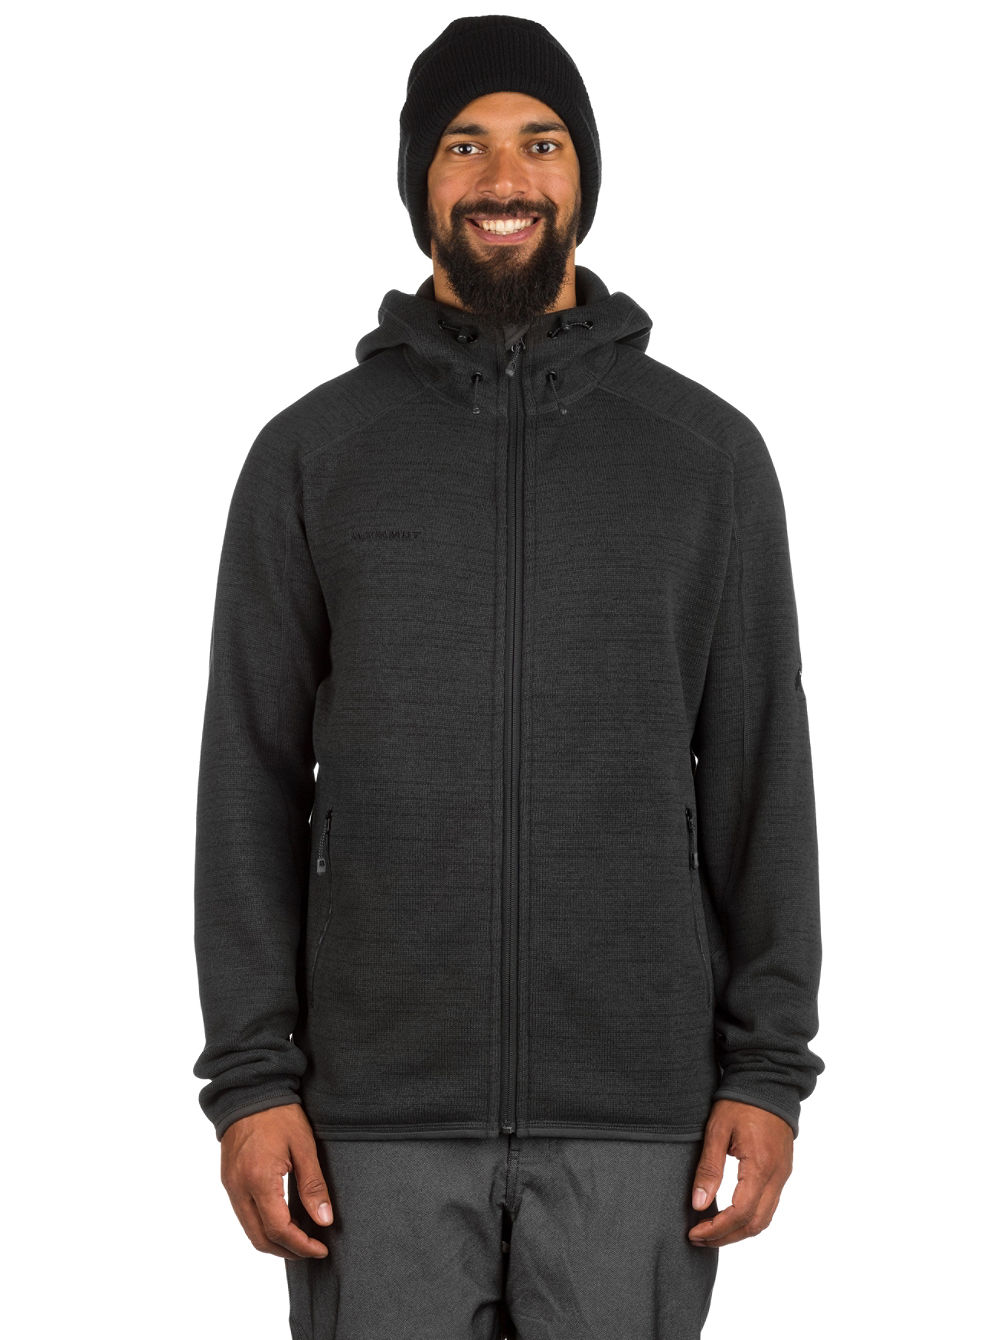 Arctic Ml Fleece Jacket